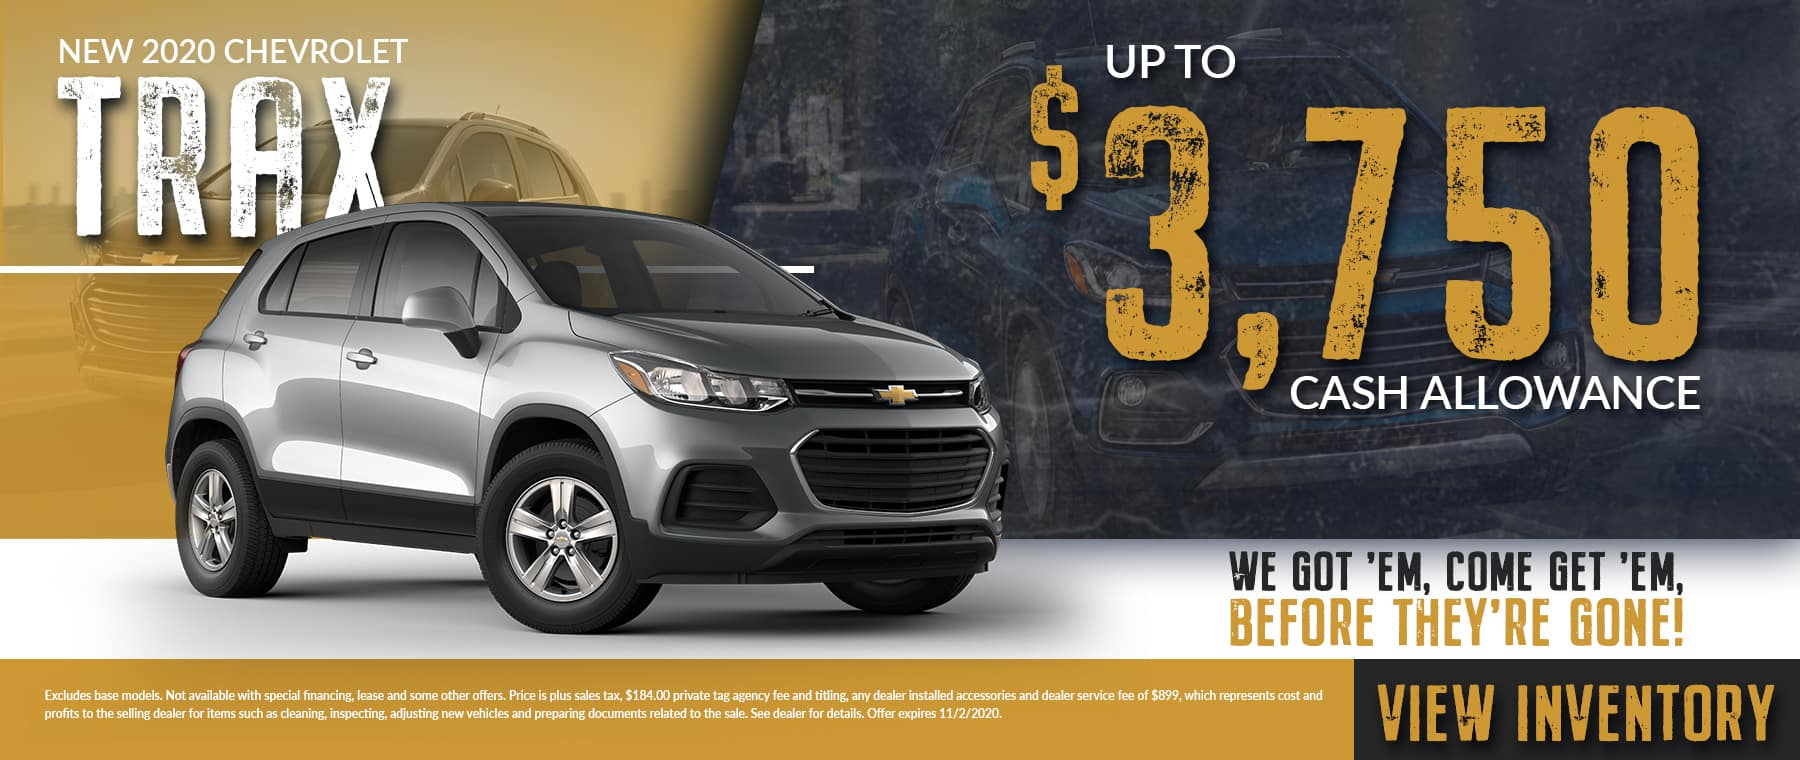 We Got 'Em, Come Get 'Em, Before They're Gone | New 2020 Chevrolet Trax | Up To $3,750 Cash Allowance